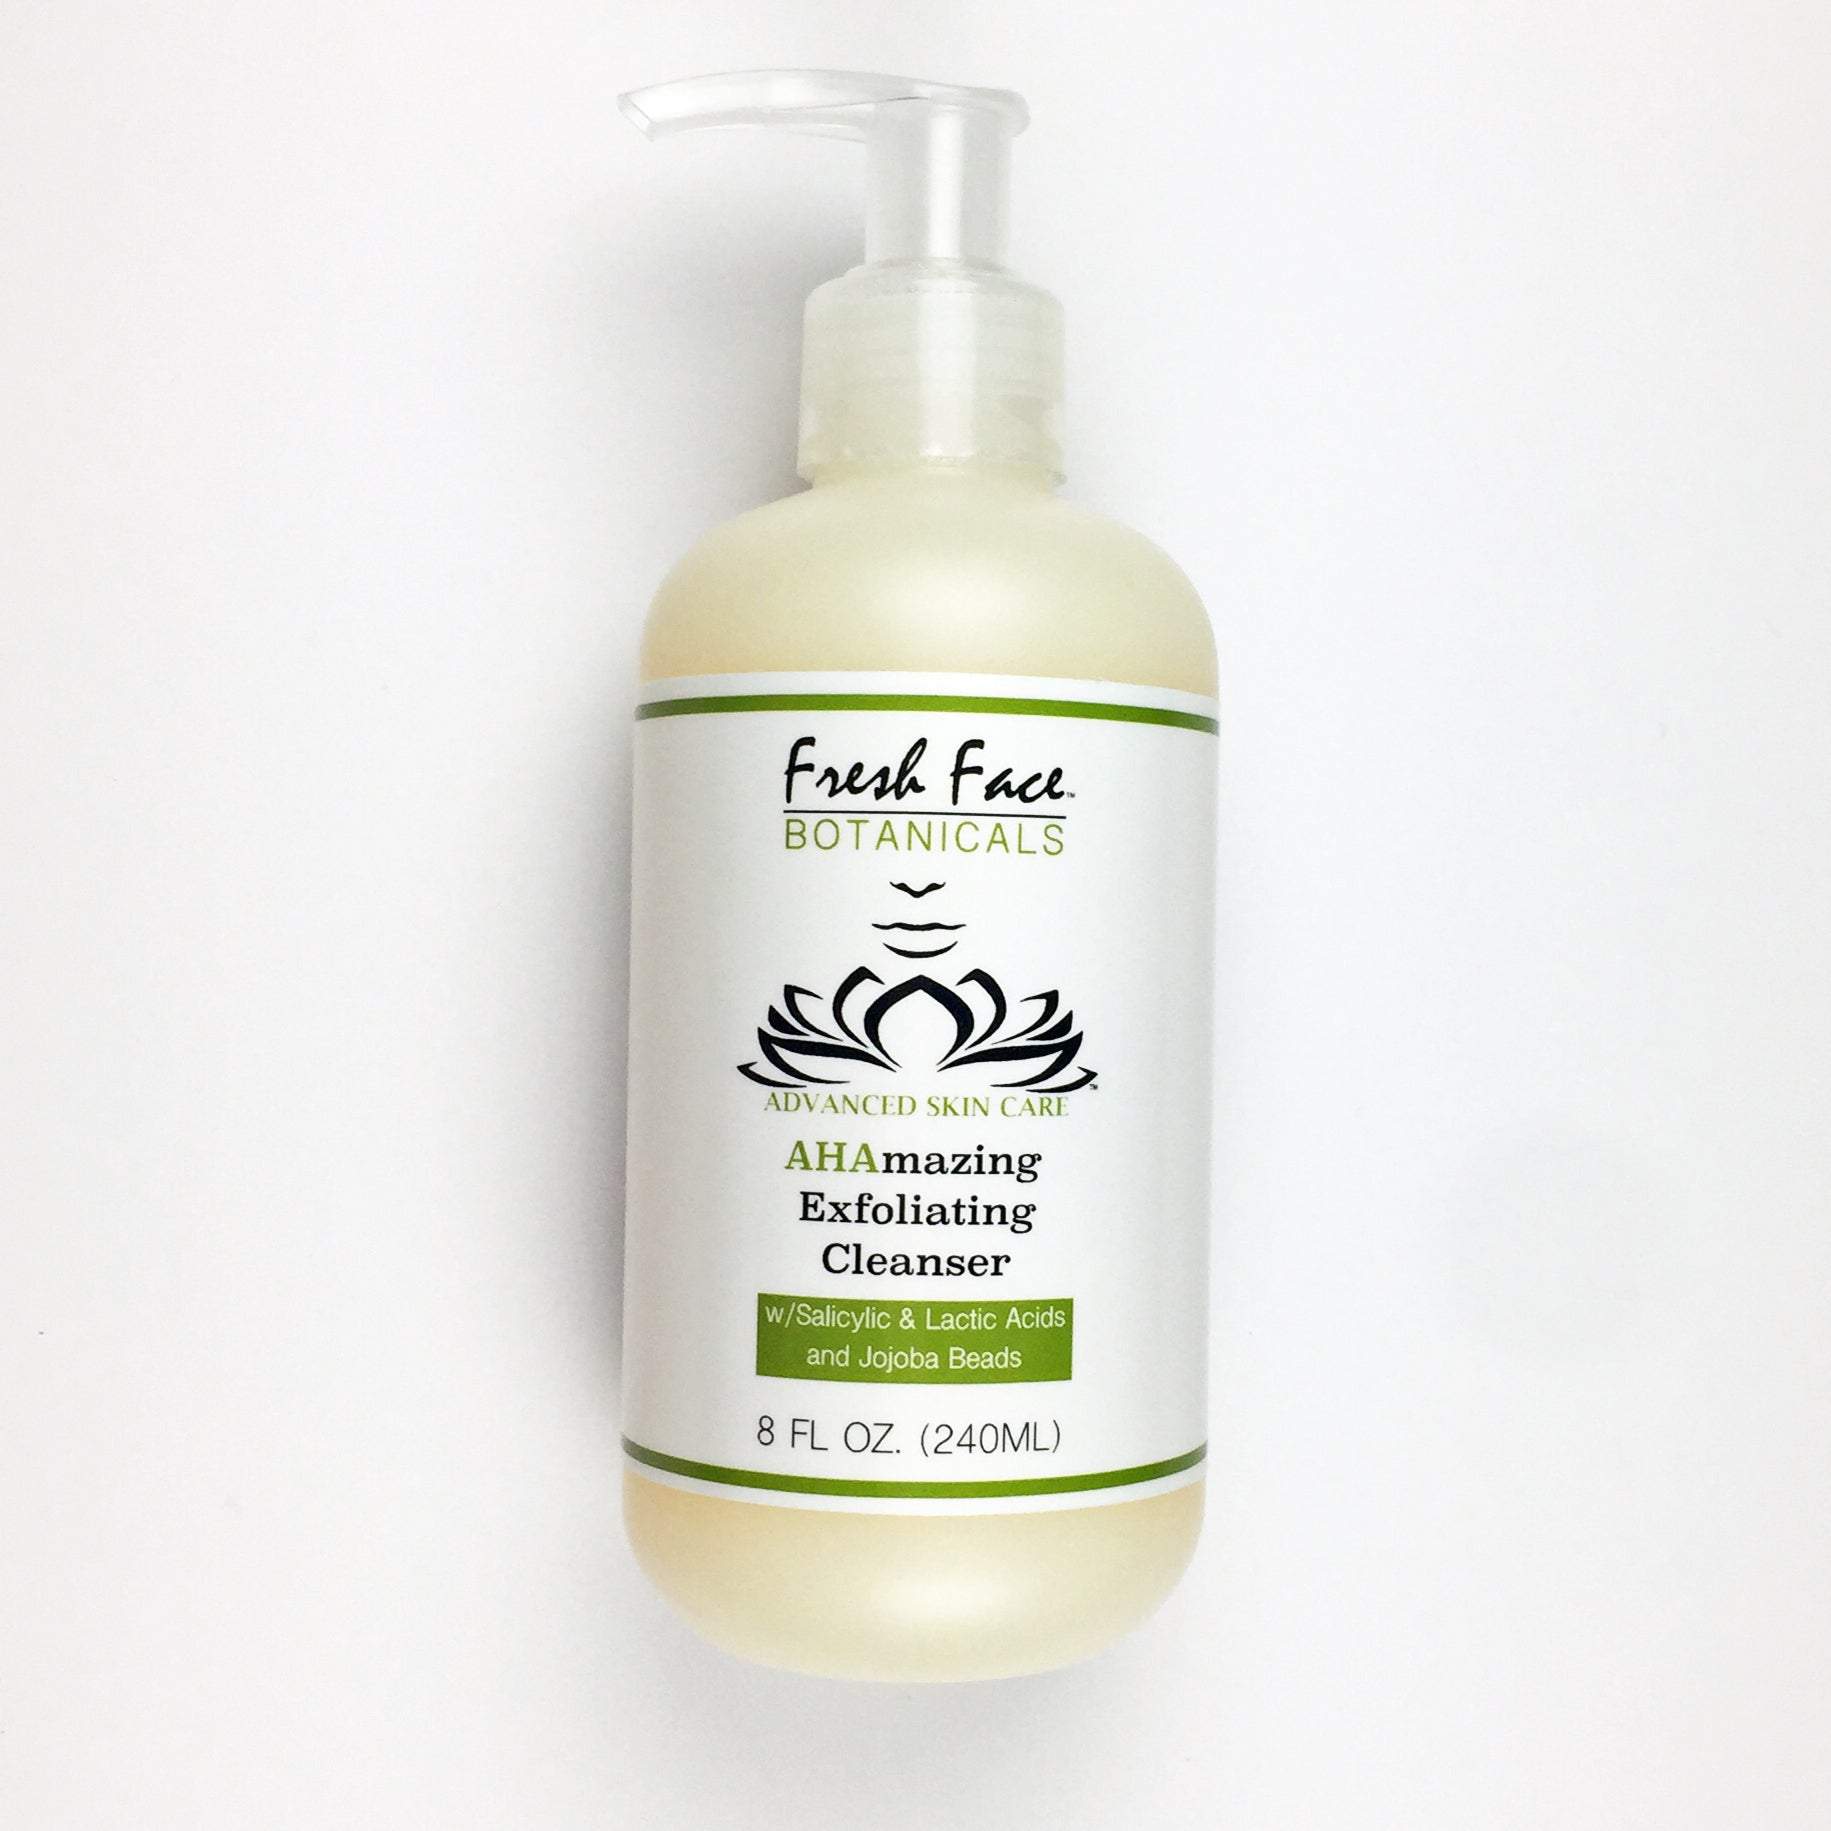 AHAmazing Exfoliating Facial Cleanser - Fresh Face Botanicals™ - Advanced Natural Skin Care